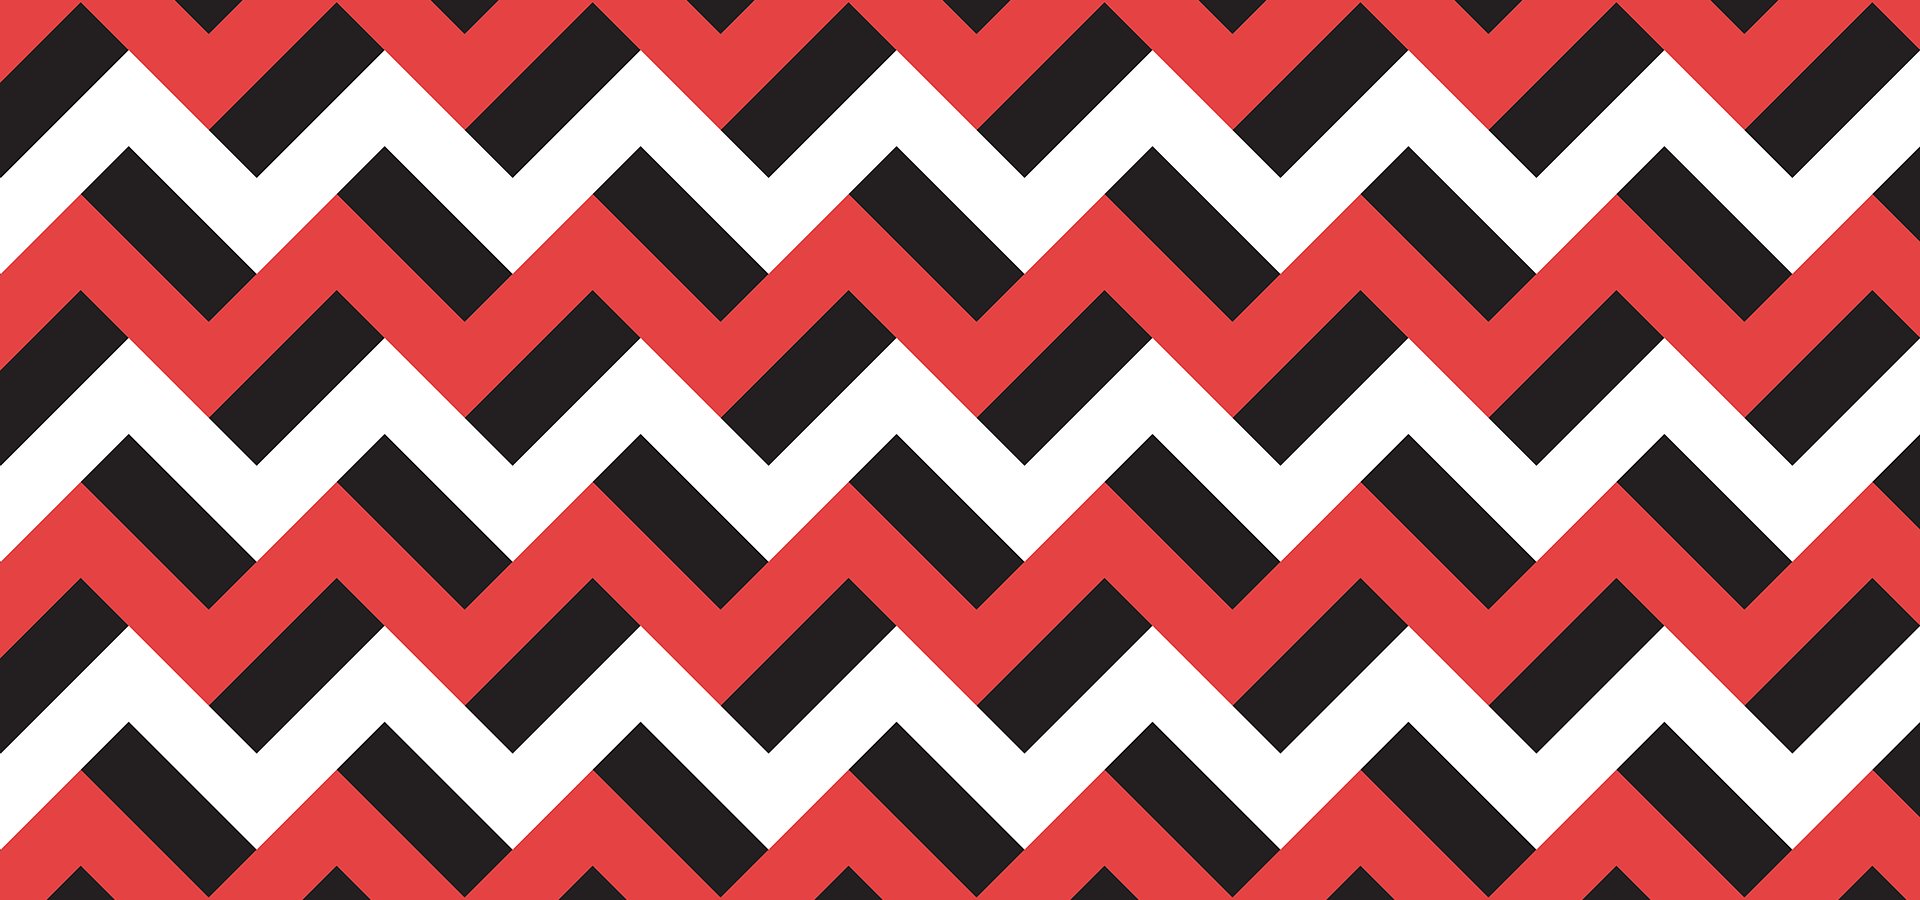 facc2e72545 Red black and white zigzags - Petits Pixels